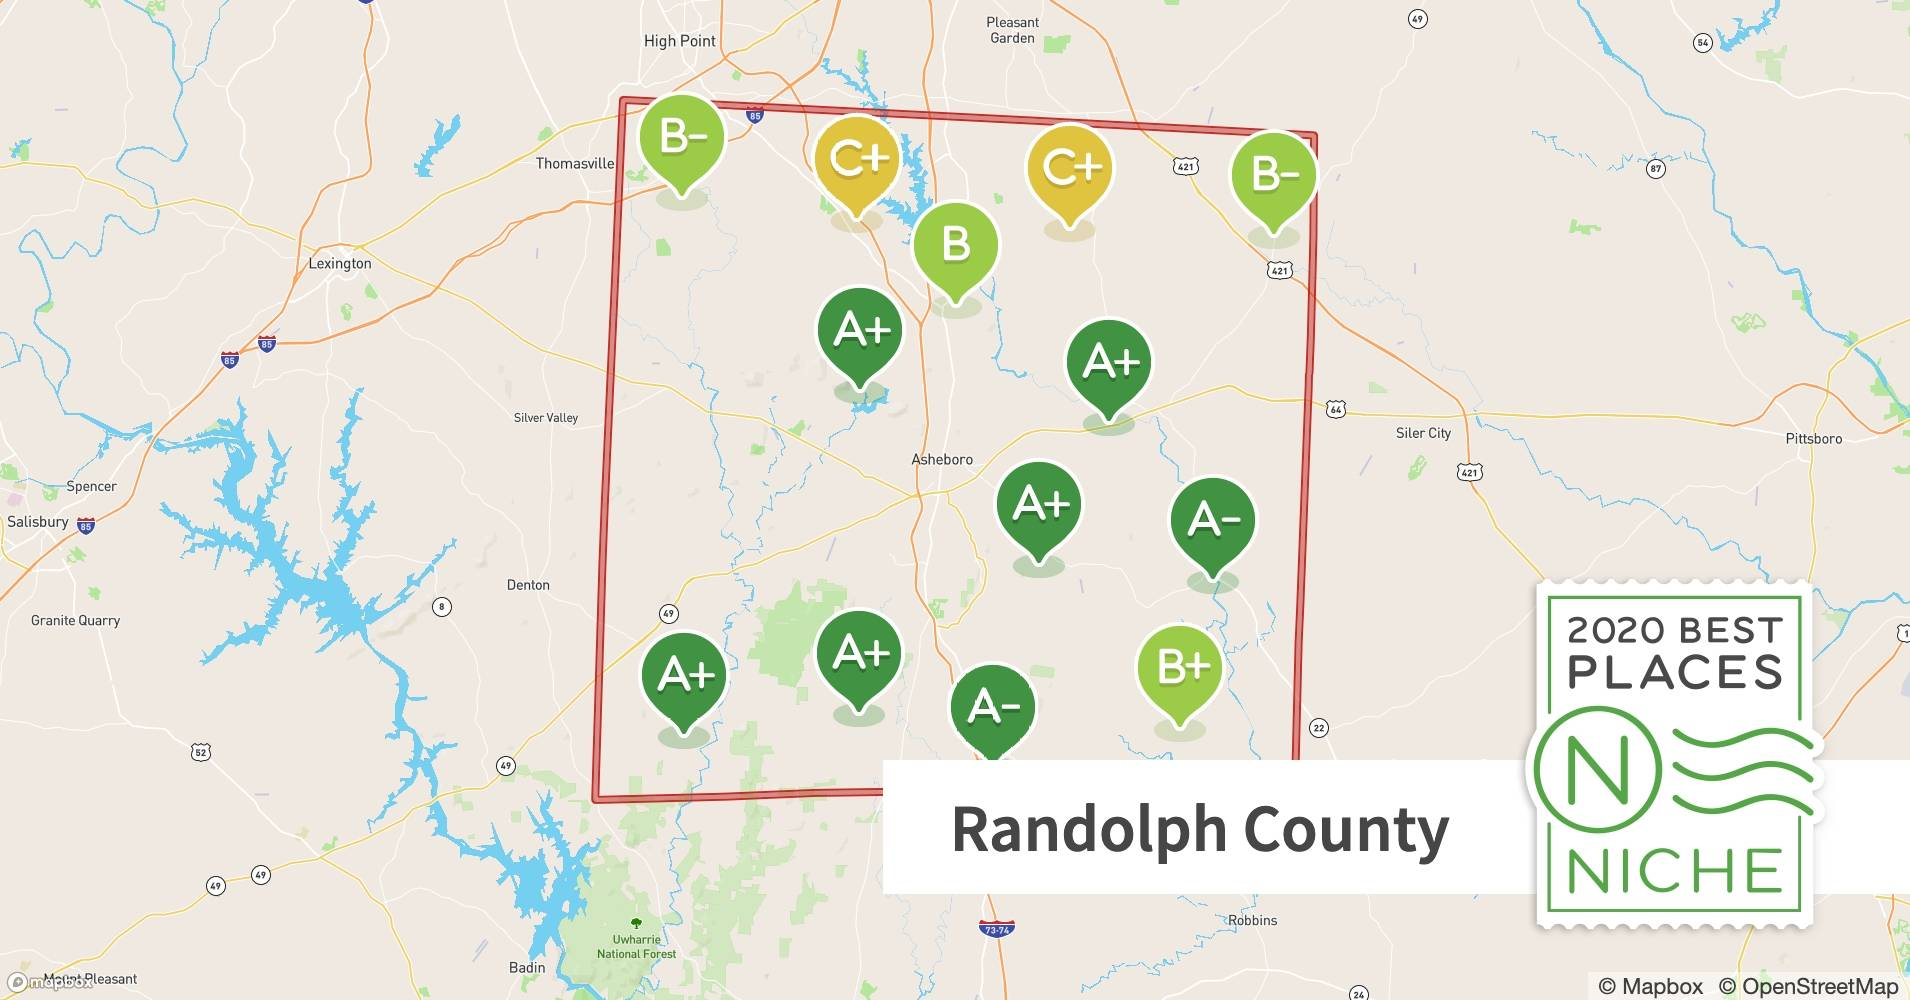 Map Of 2020 Randolph County Christmas Tour Of Homes 2020 Best Places to Live in Randolph County, NC   Niche